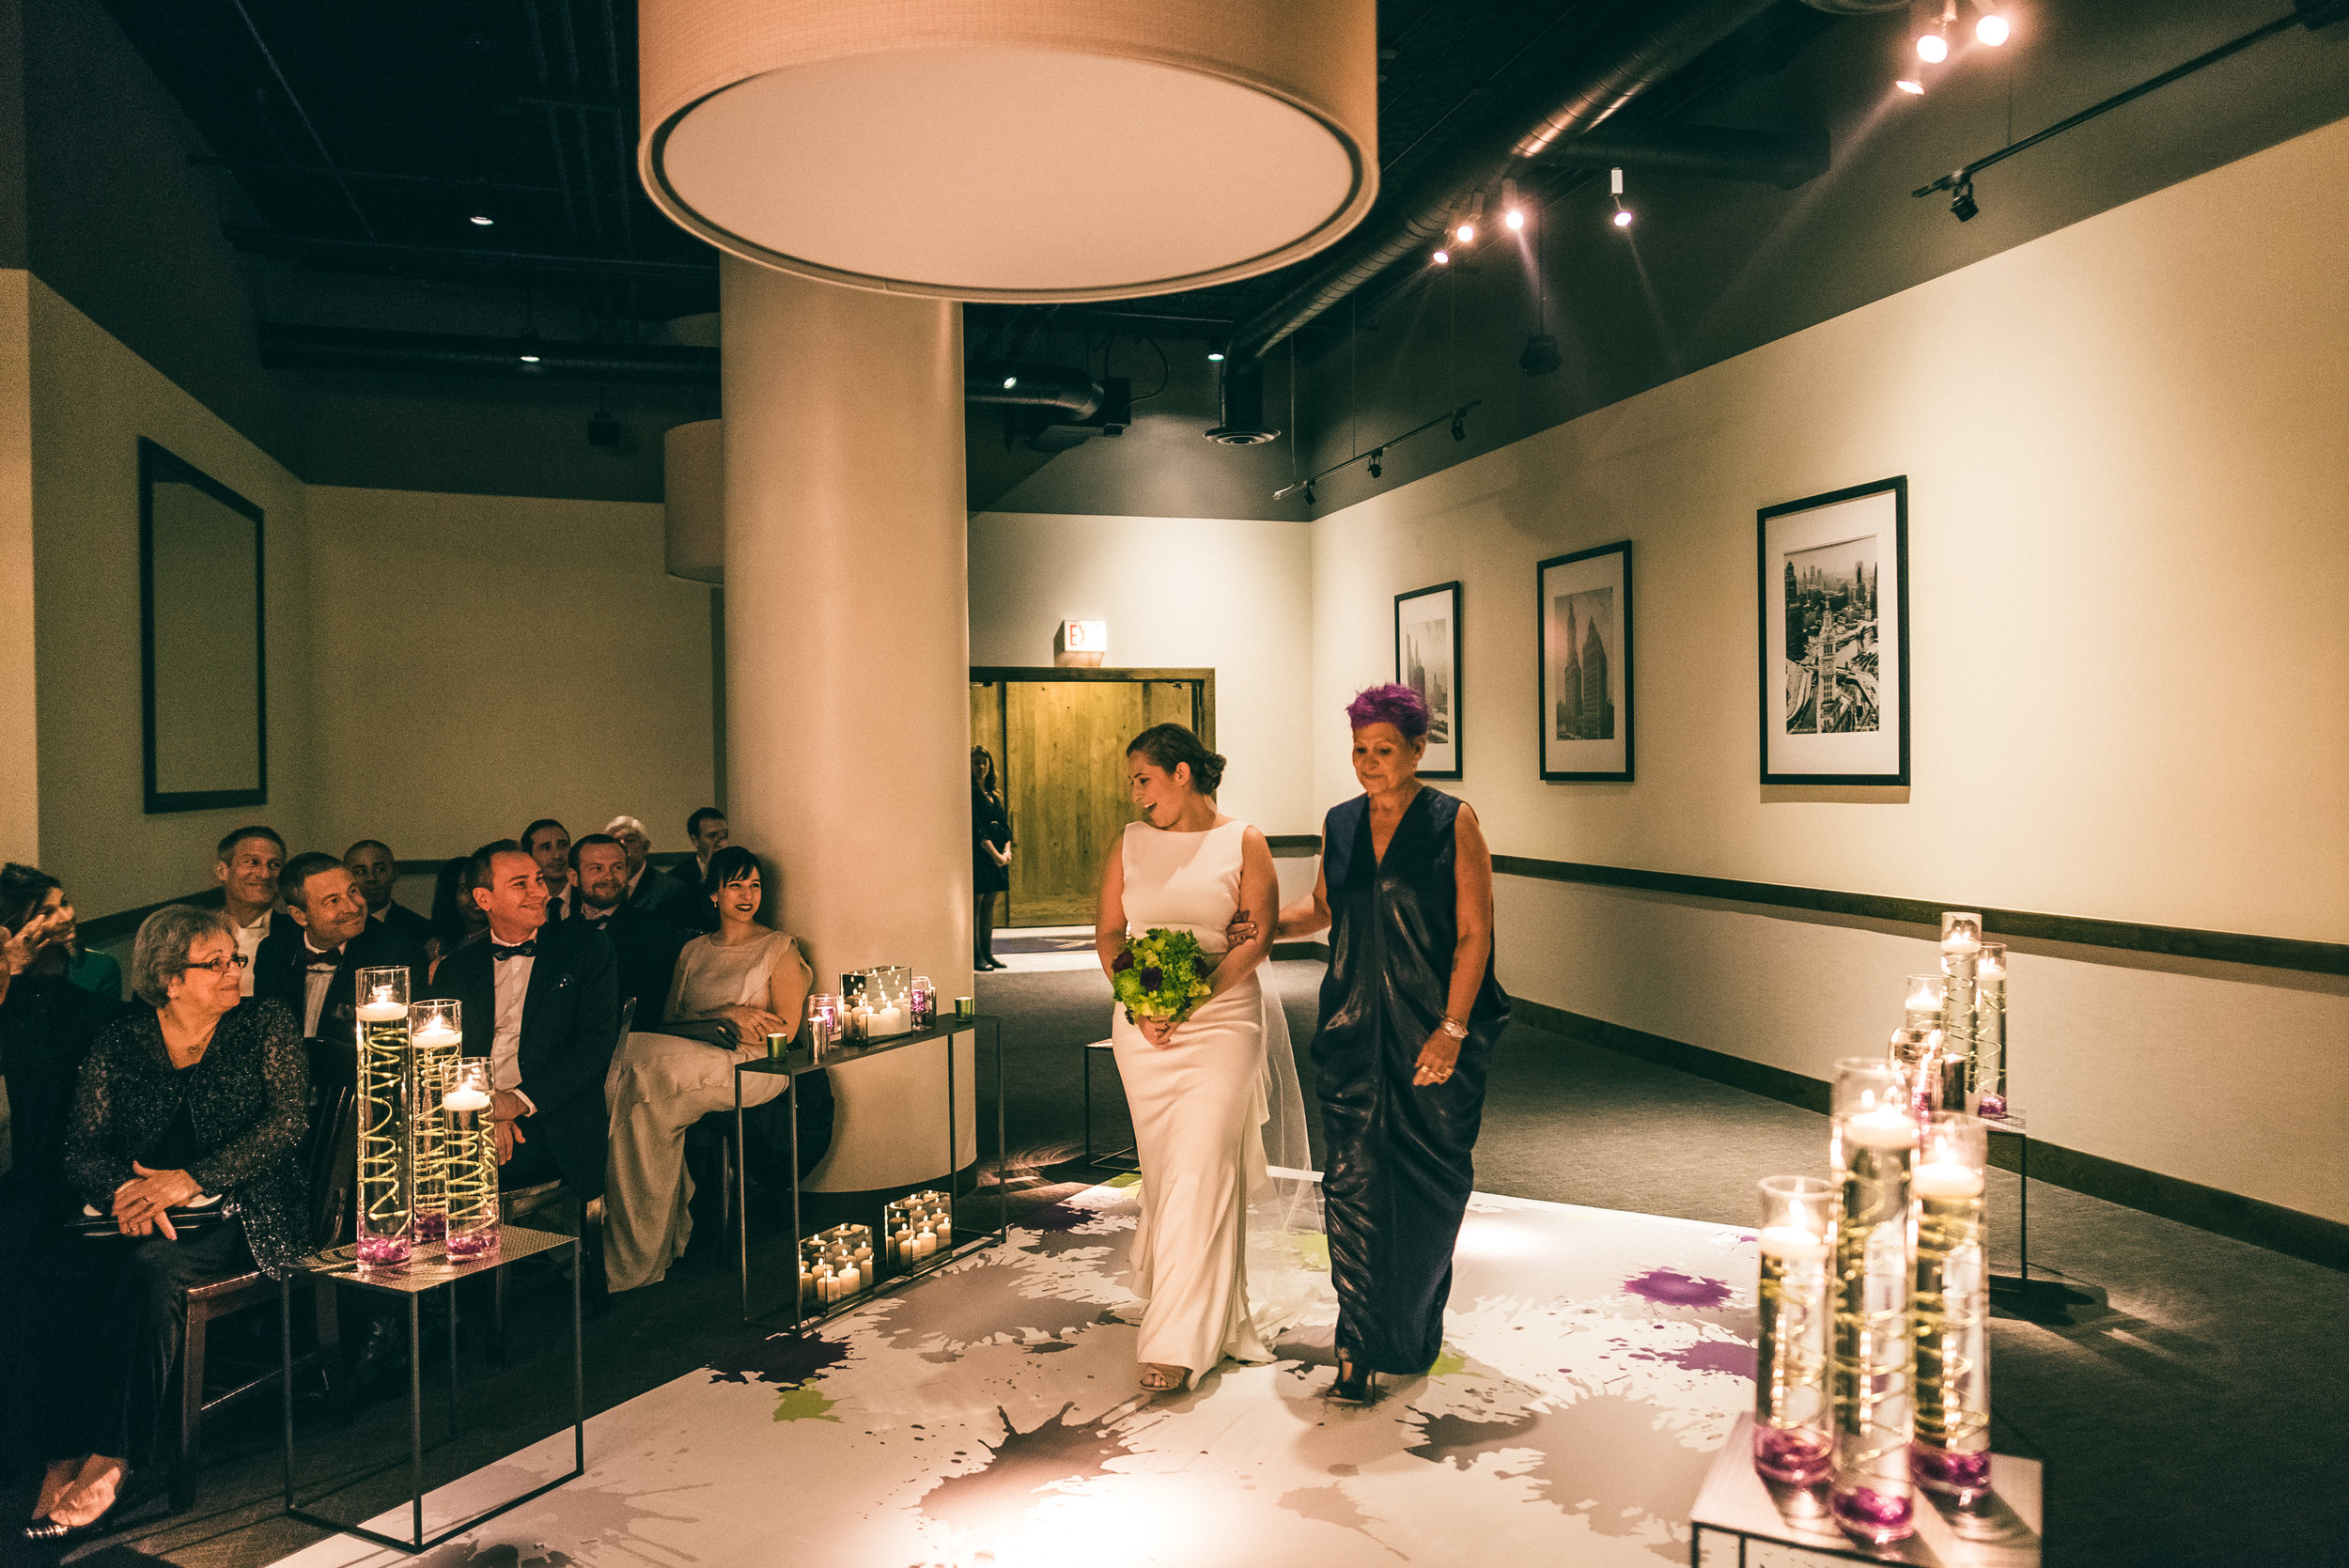 Bride walking down the aisle with her mother for Jewish ceremony at River Roast Social House in Chicago